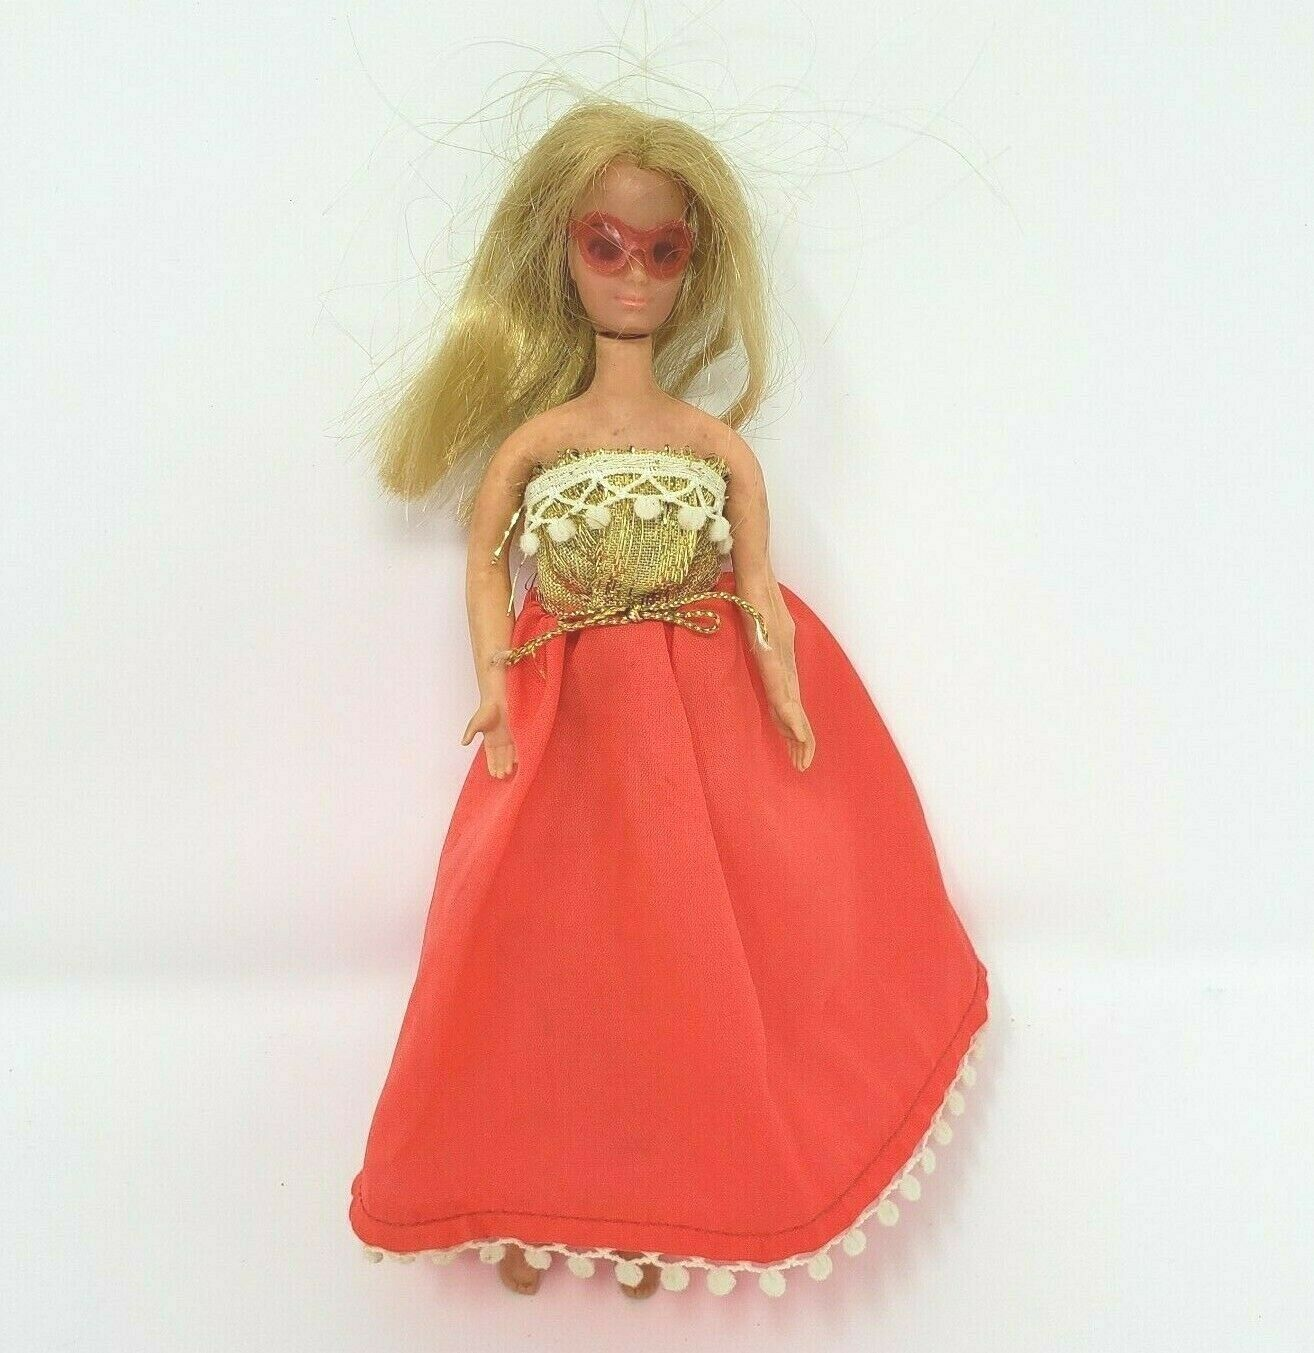 Primary image for VINTAGE RETRO 1970'S ROCK FLOWER BLONDE HEATHER RUBBER DOLL MATTEL HONG KONG